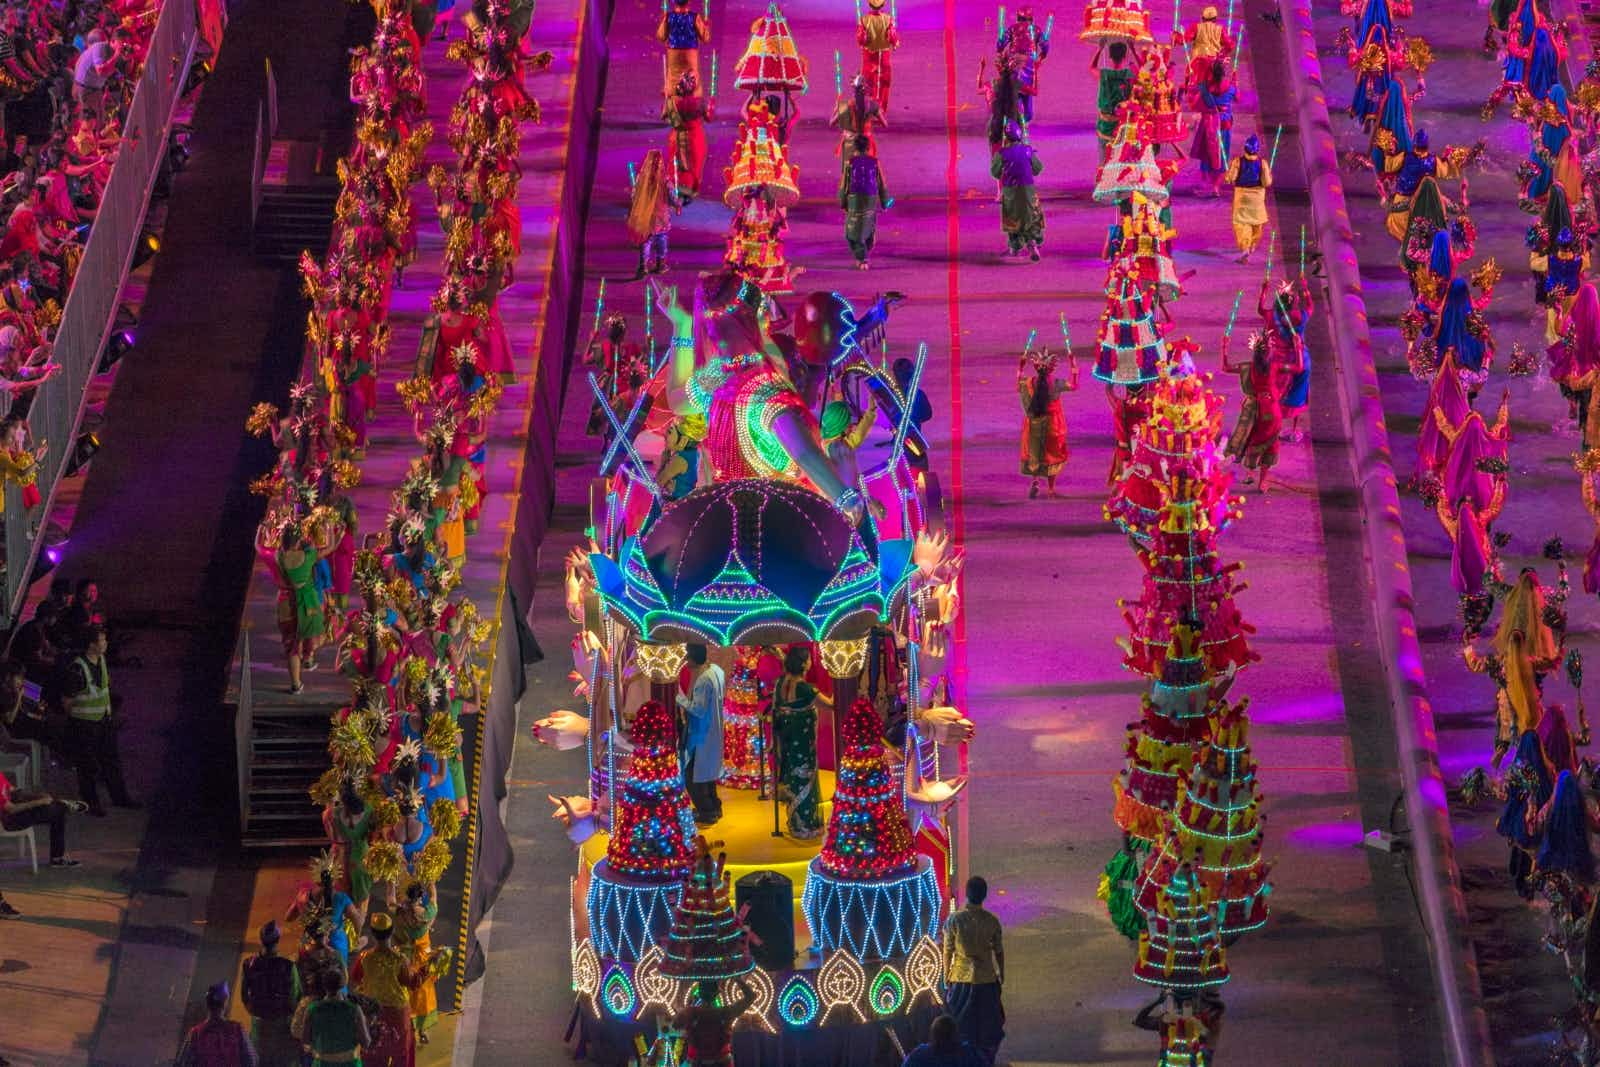 An large float covered in bright lights makes its way down the Chingay parade path.